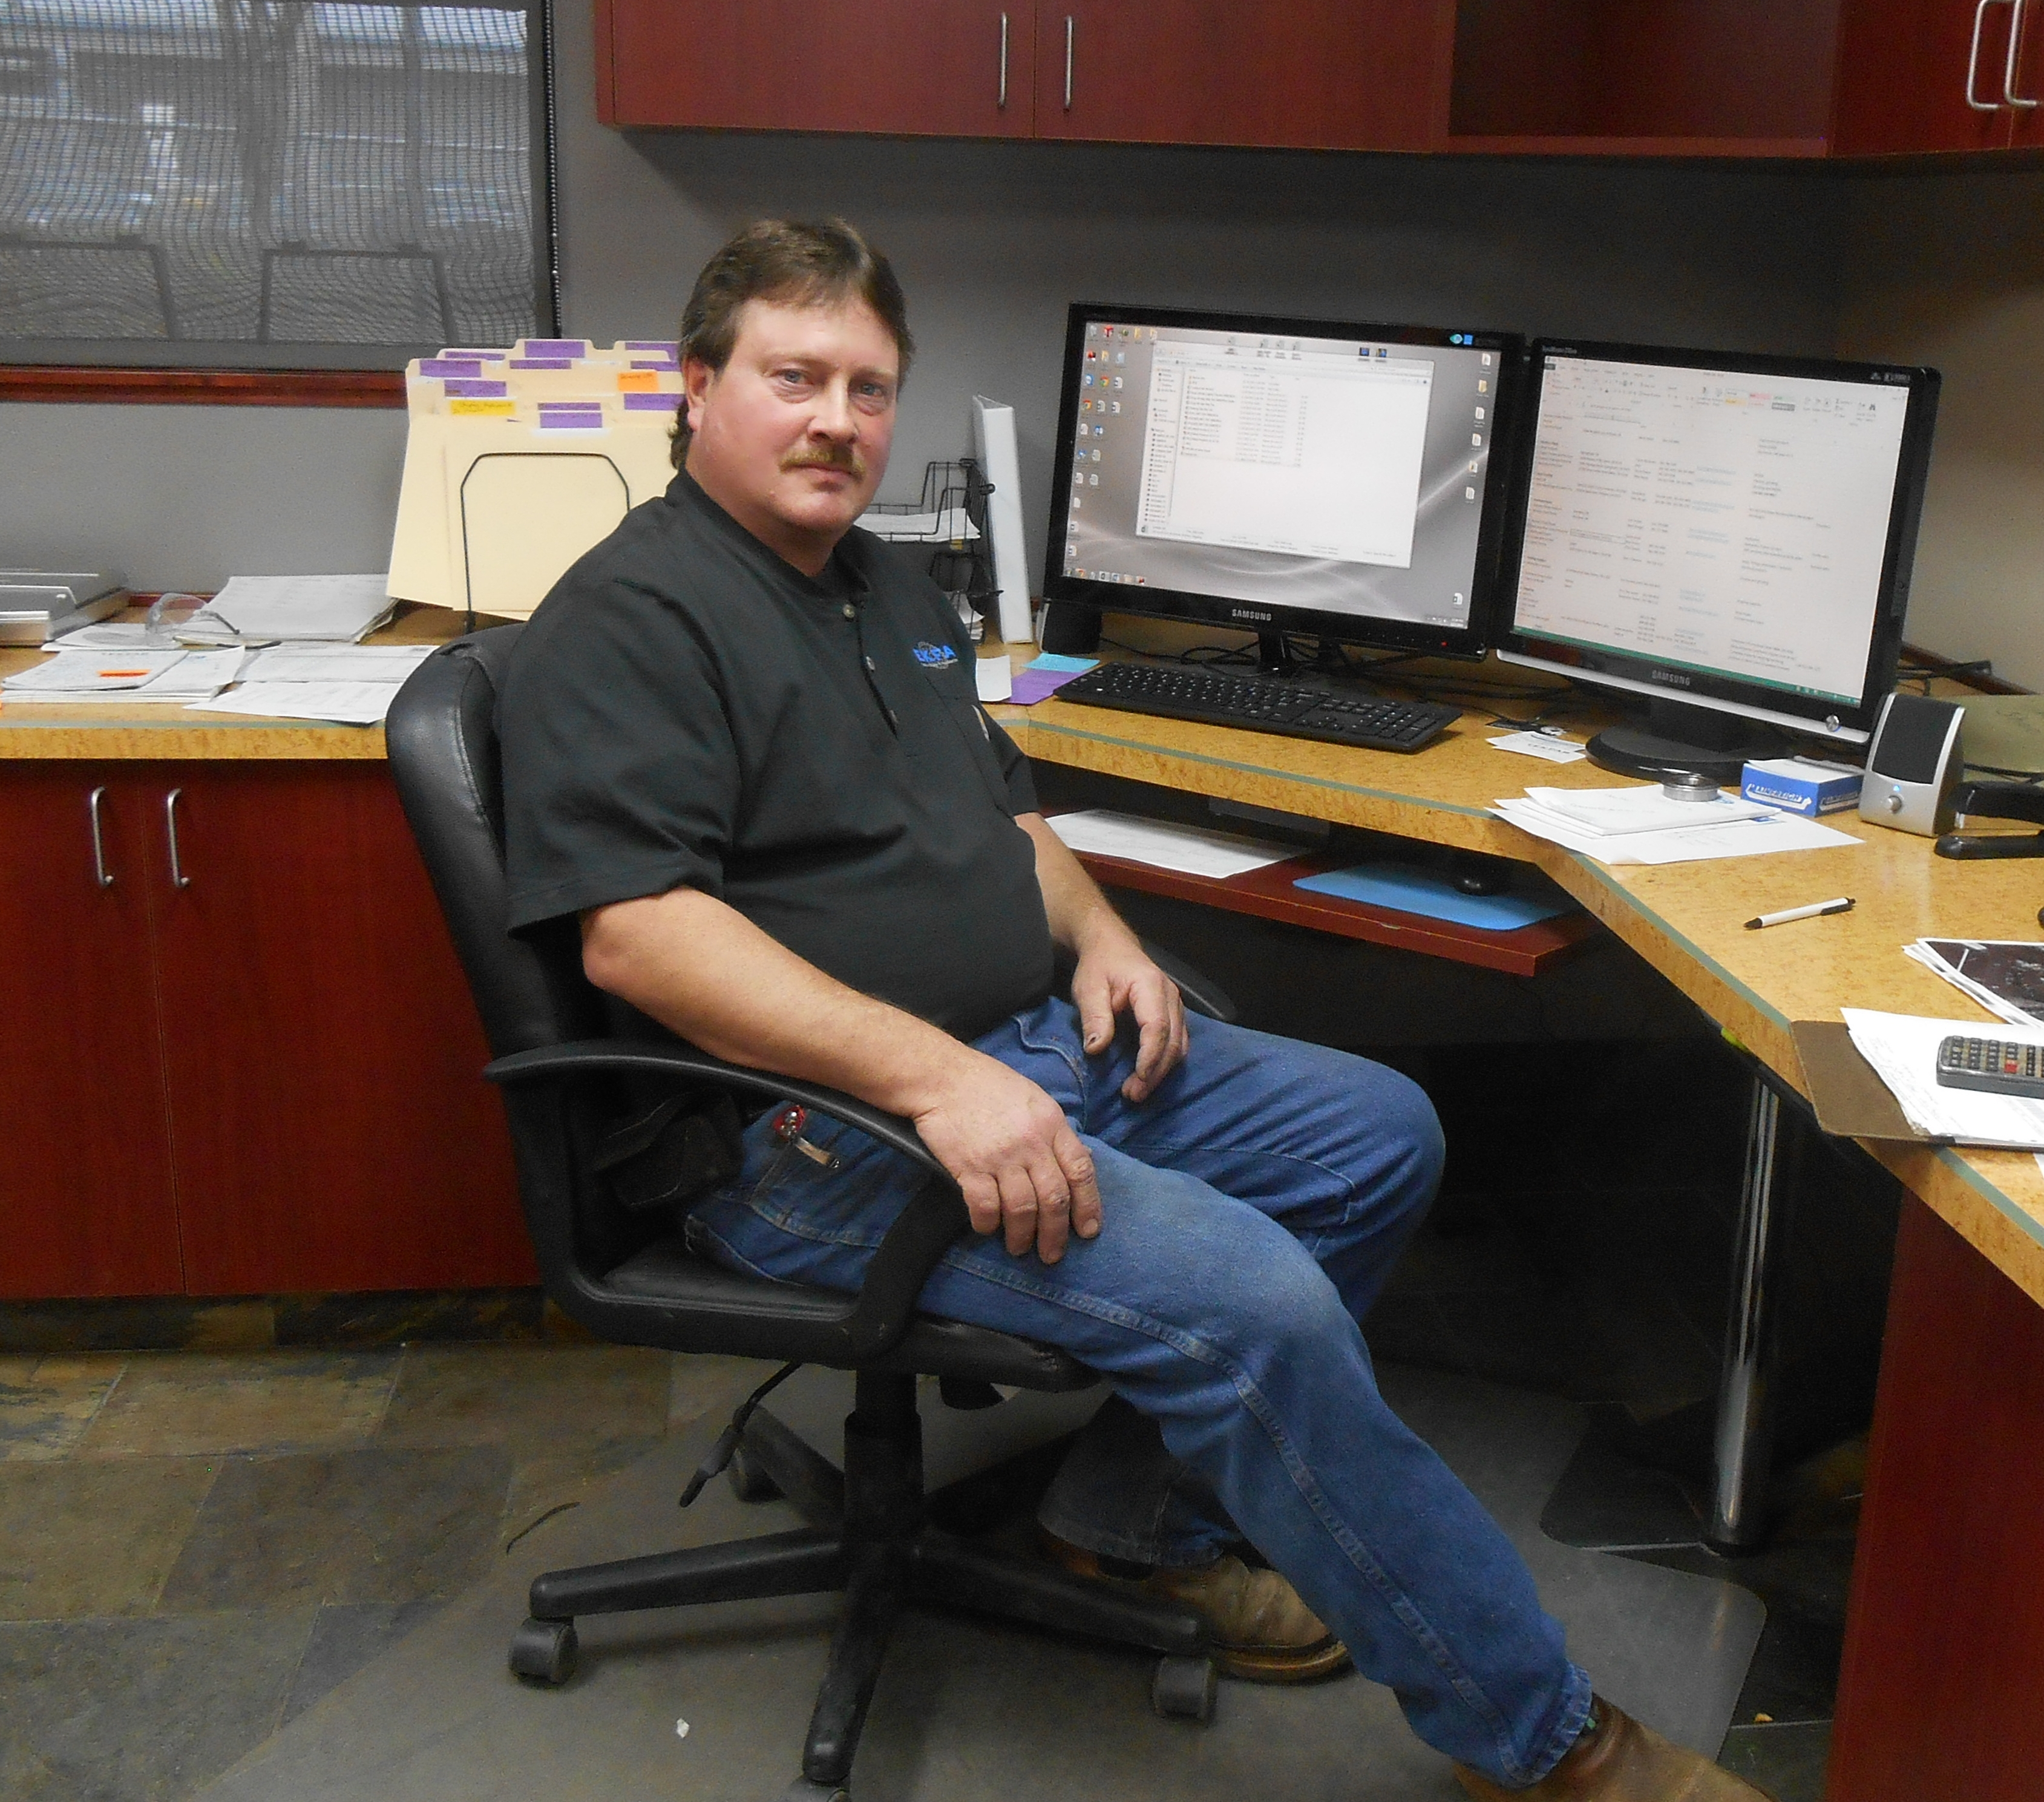 Welcome Dave Adams to the team!